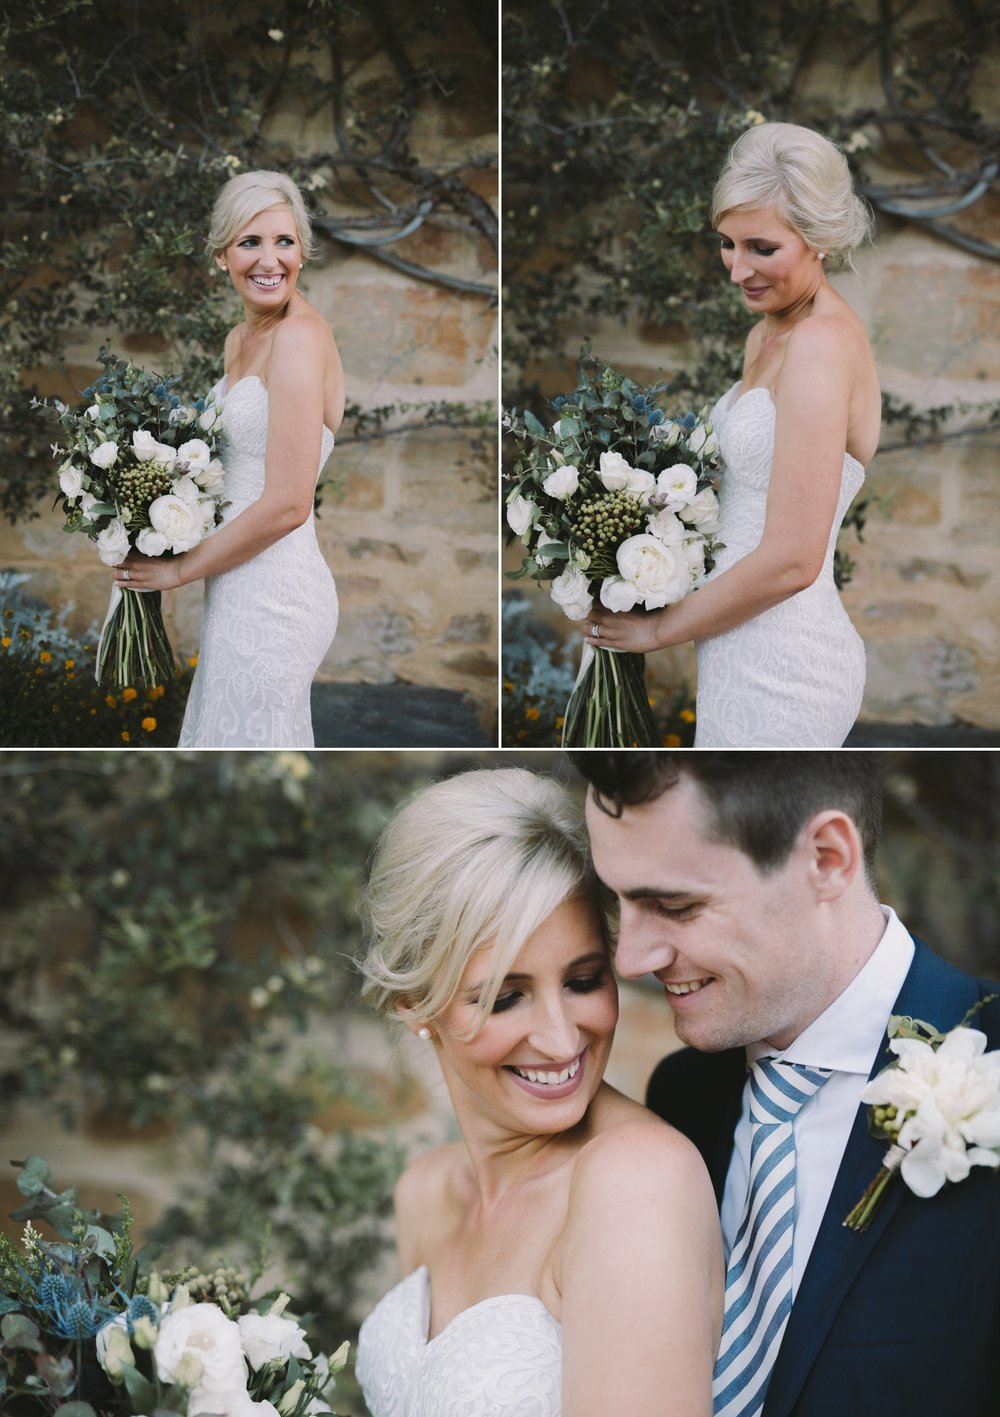 Lauren & Max - Marybank Estate Wedding - Natural wedding photographer in Adelaide - www.katherineschultzphotography.com 102